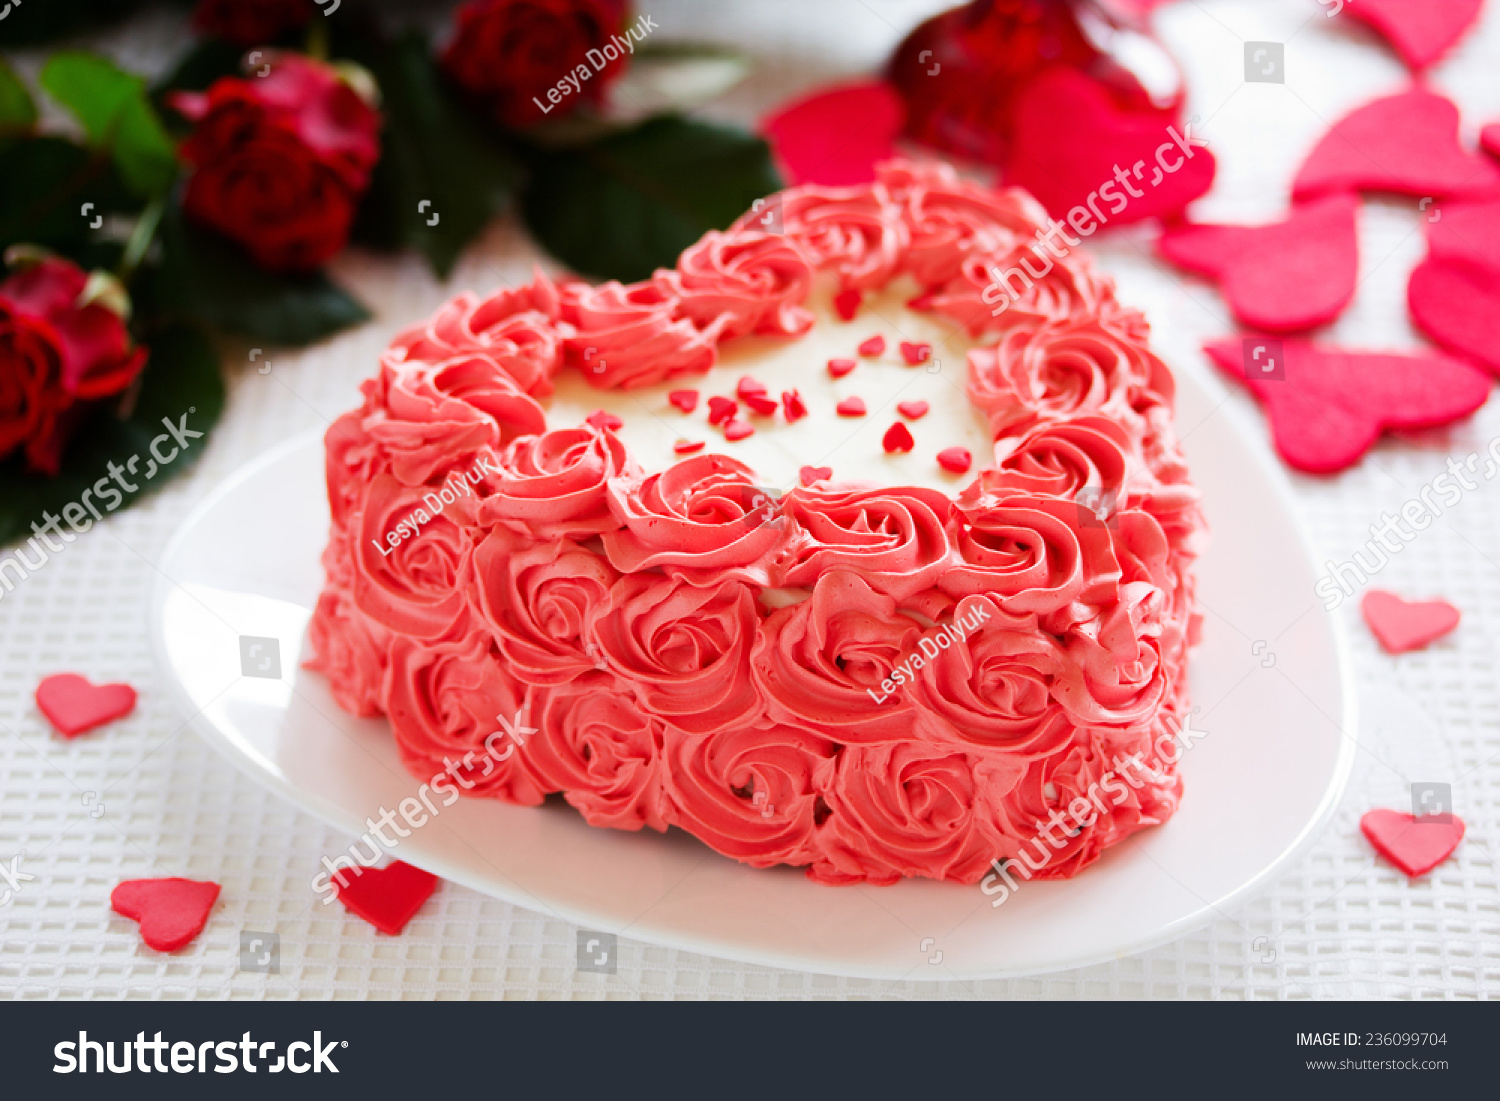 Birthday Cake Valentines Day Roses Stock Photo Edit Now 236099704